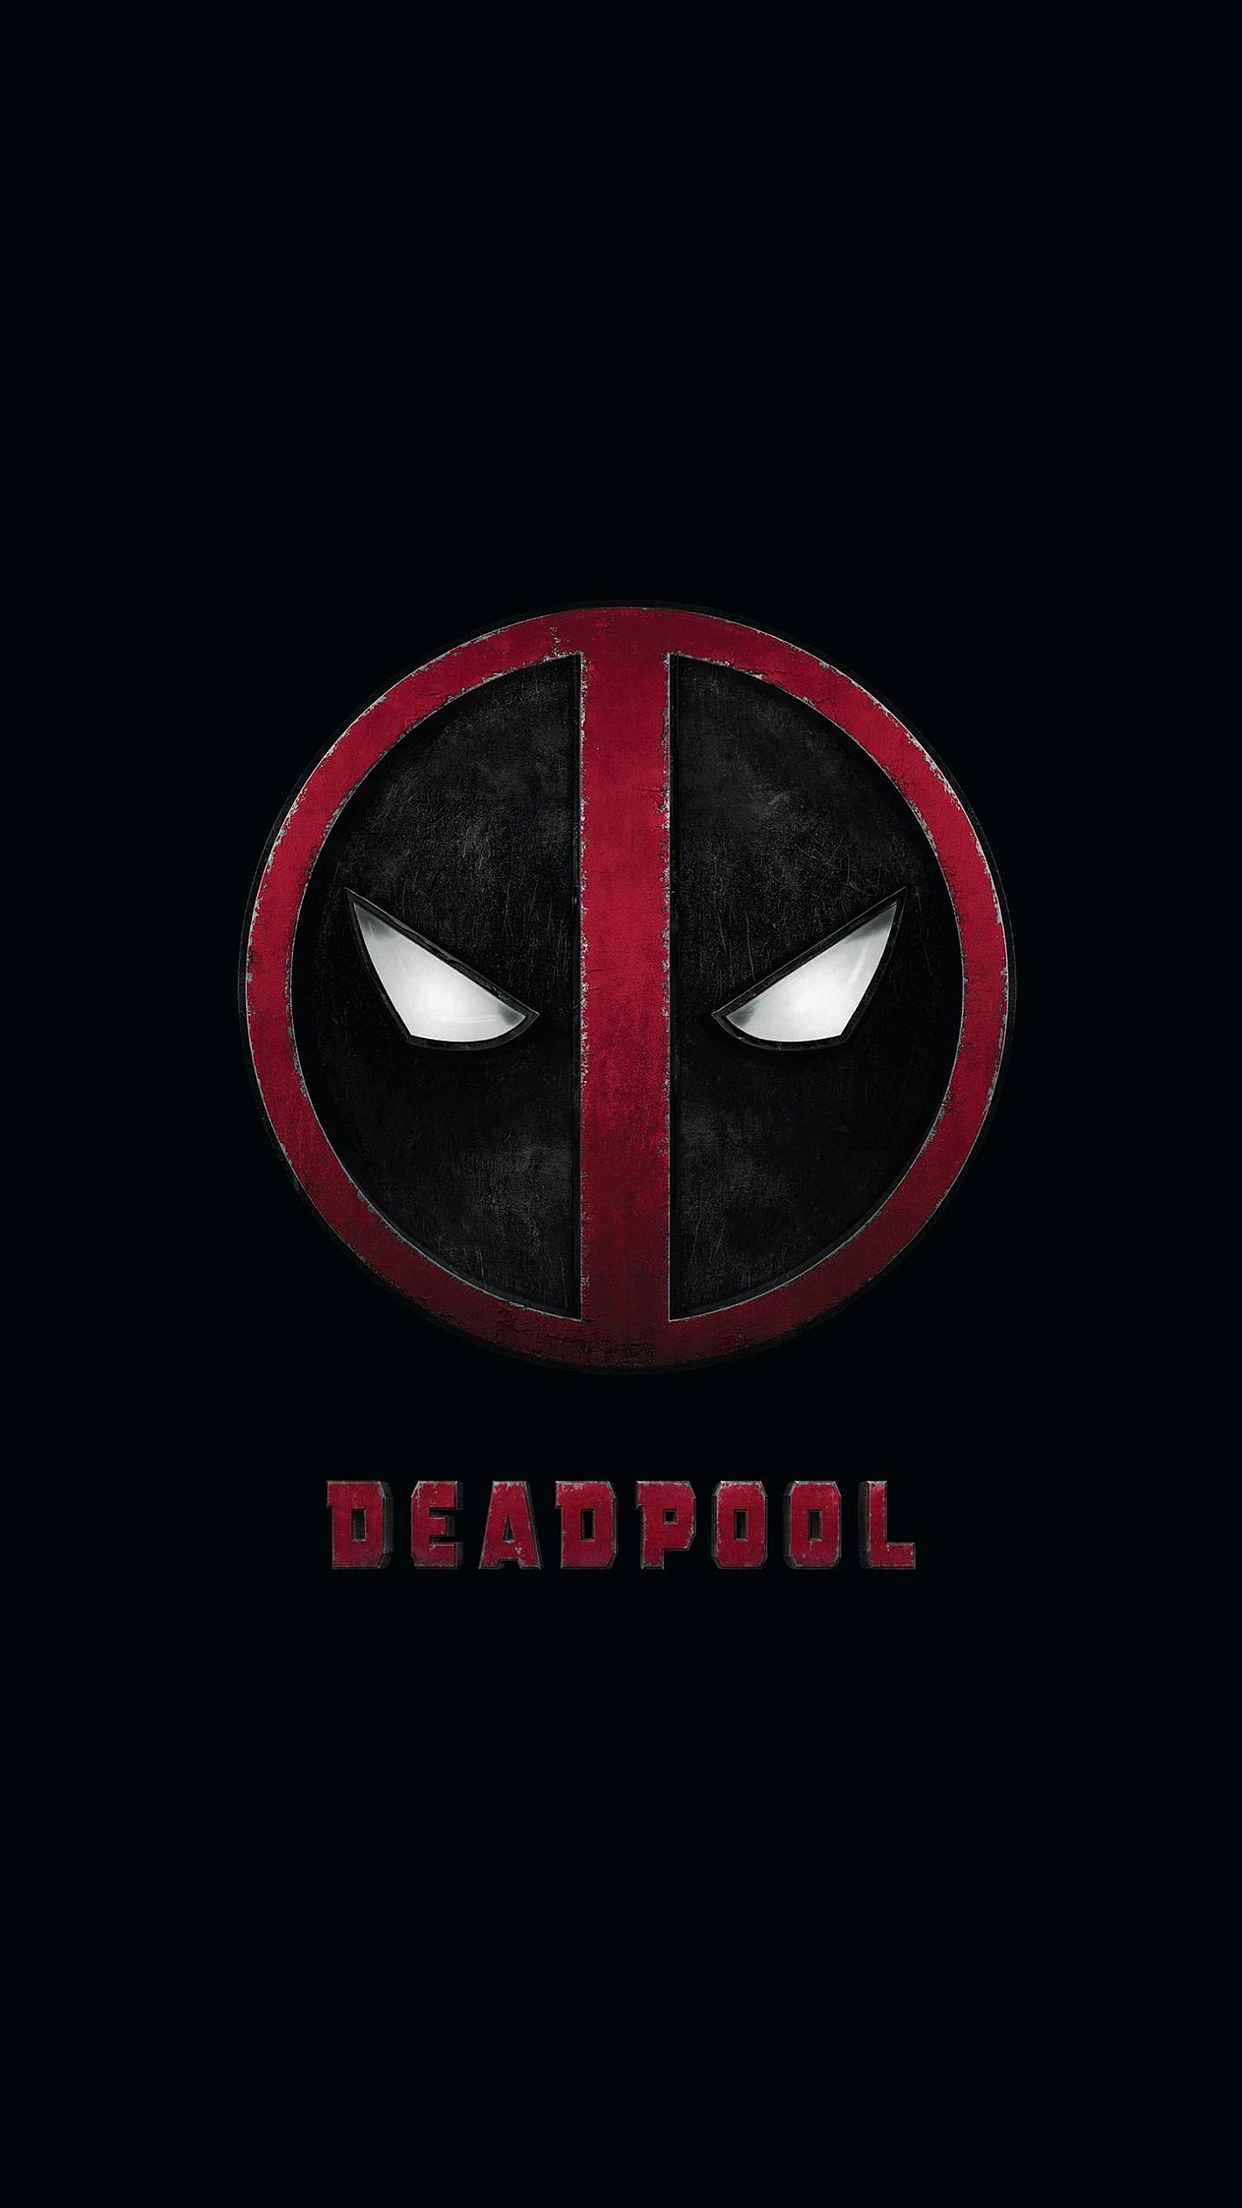 deadpool hd wallpapers for phone